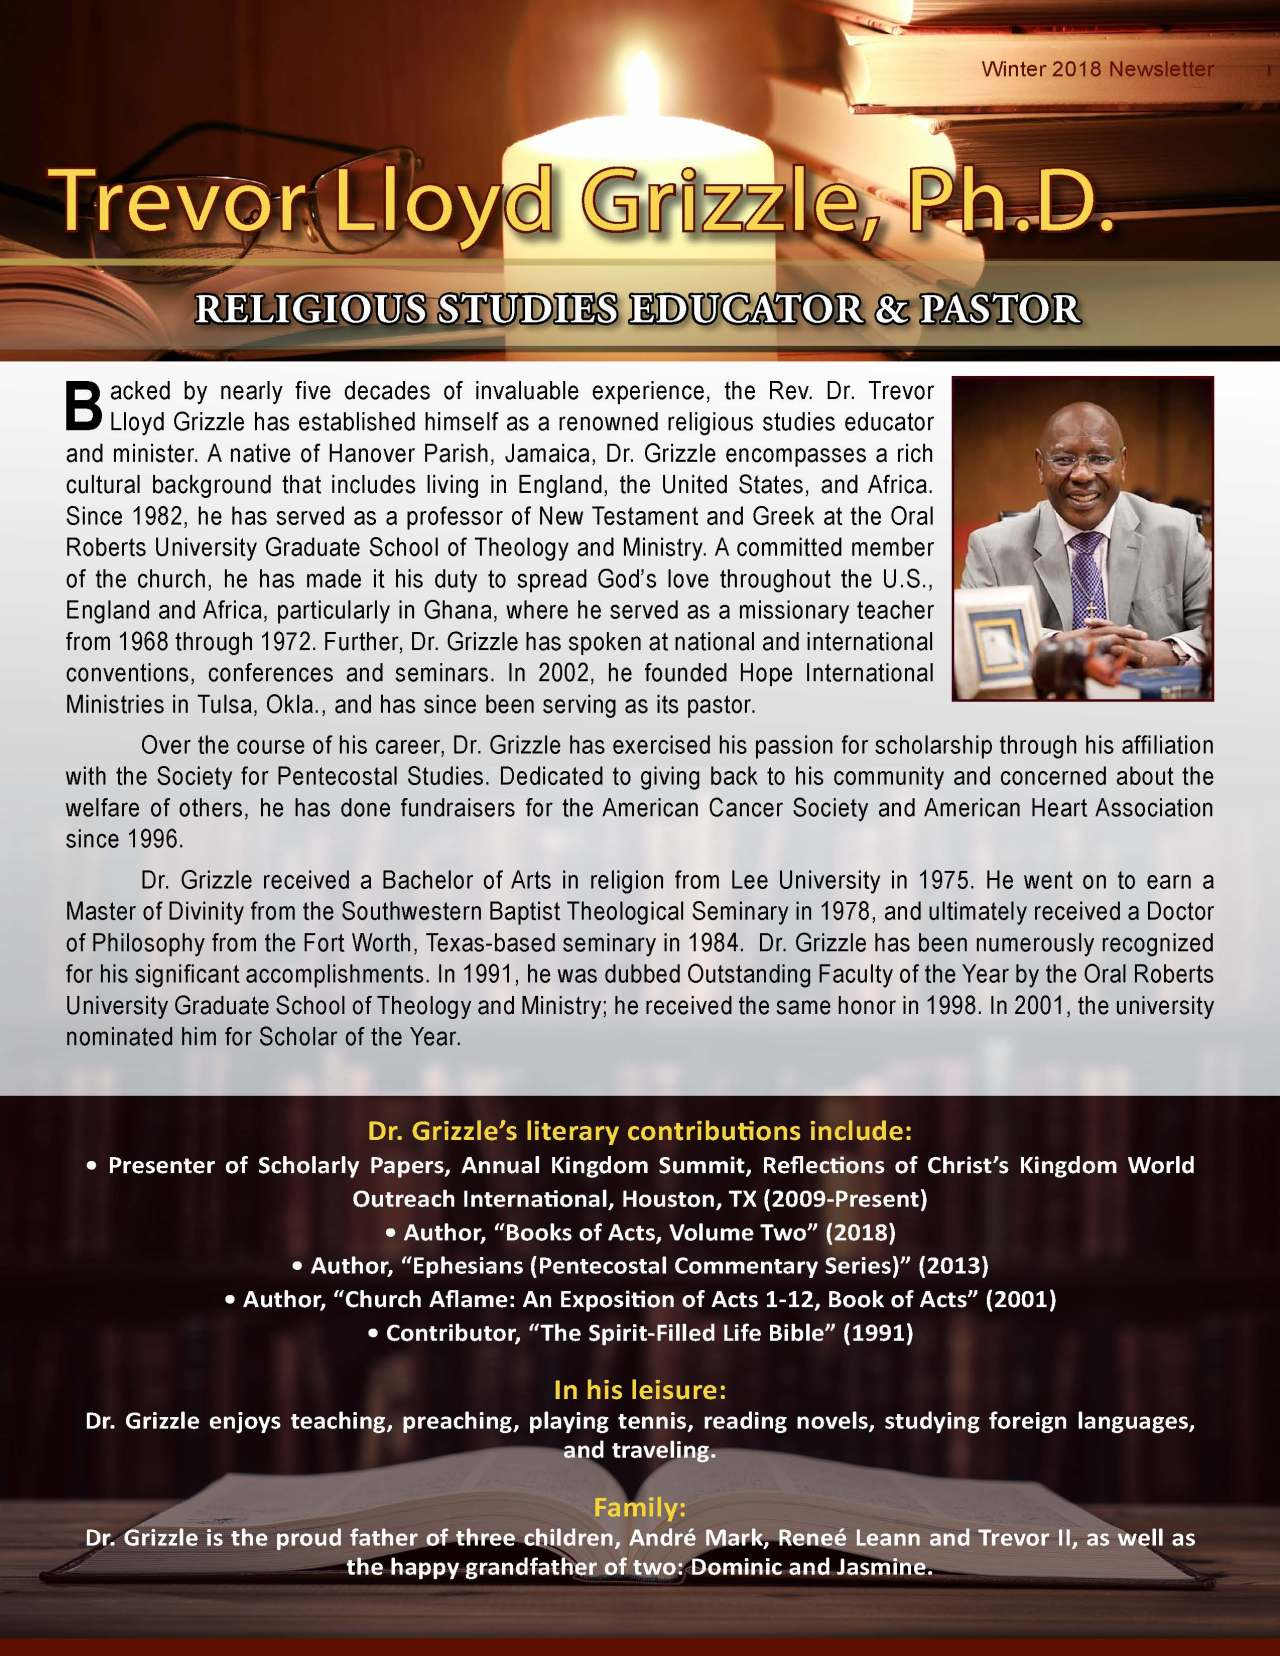 Grizzle, Trevor 3662818_30610983 Newsletter REVISED.jpg